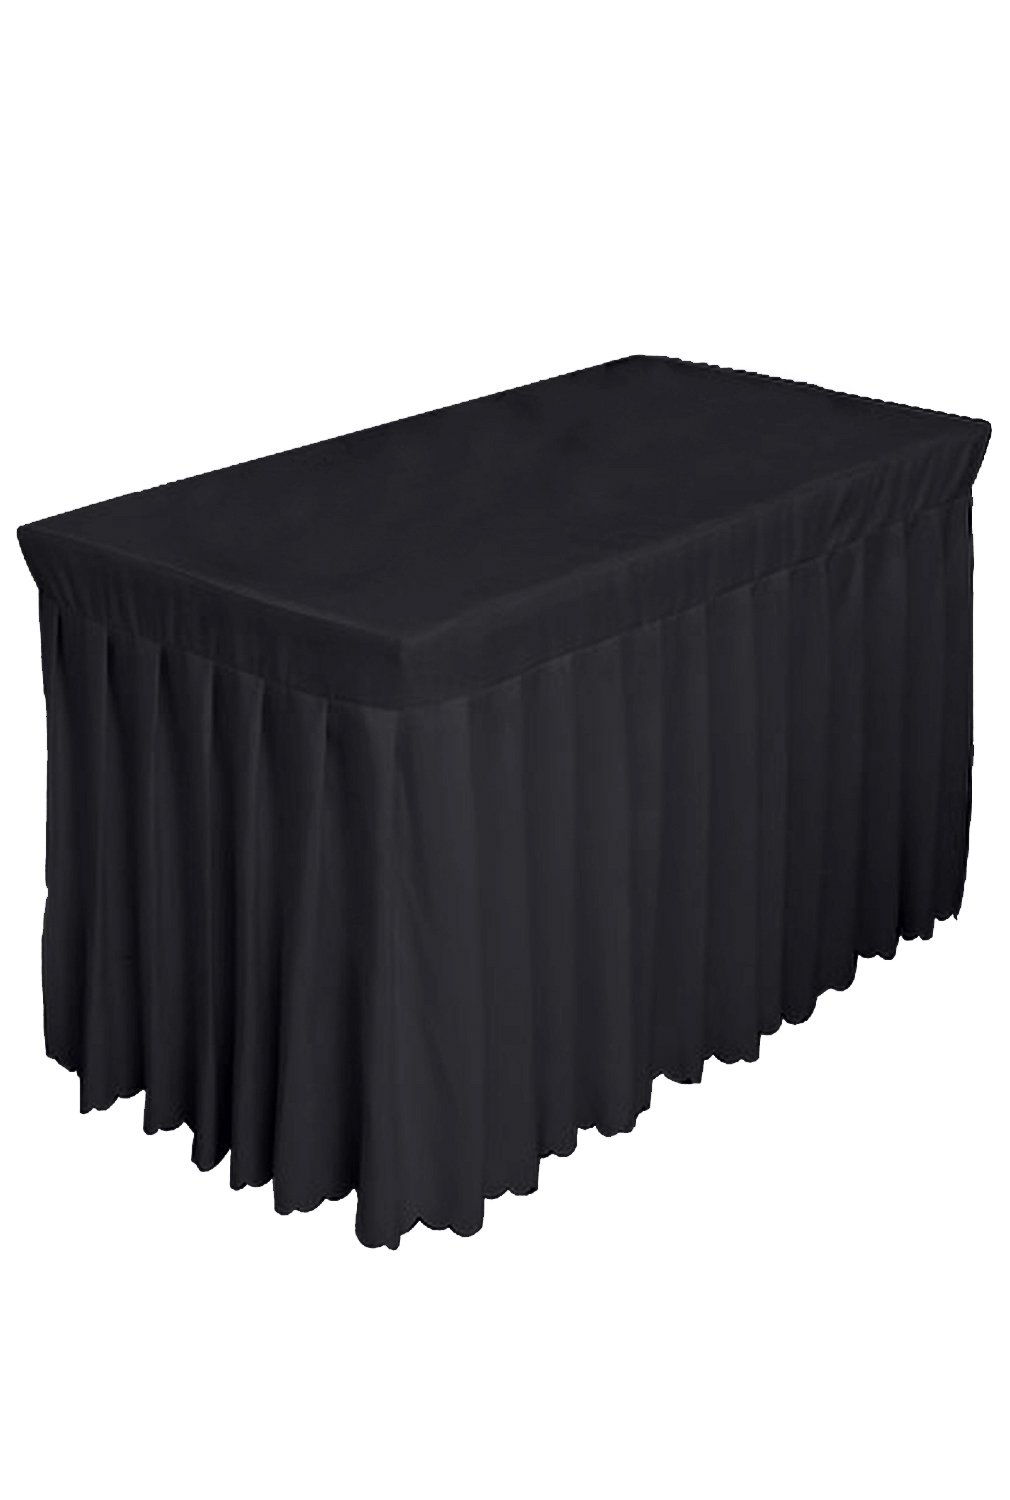 Tina 6' ft Polyester Fitted Tablecloth Table Skirt for Wedding Banquet Trade Show Black by Tina's (Image #1)